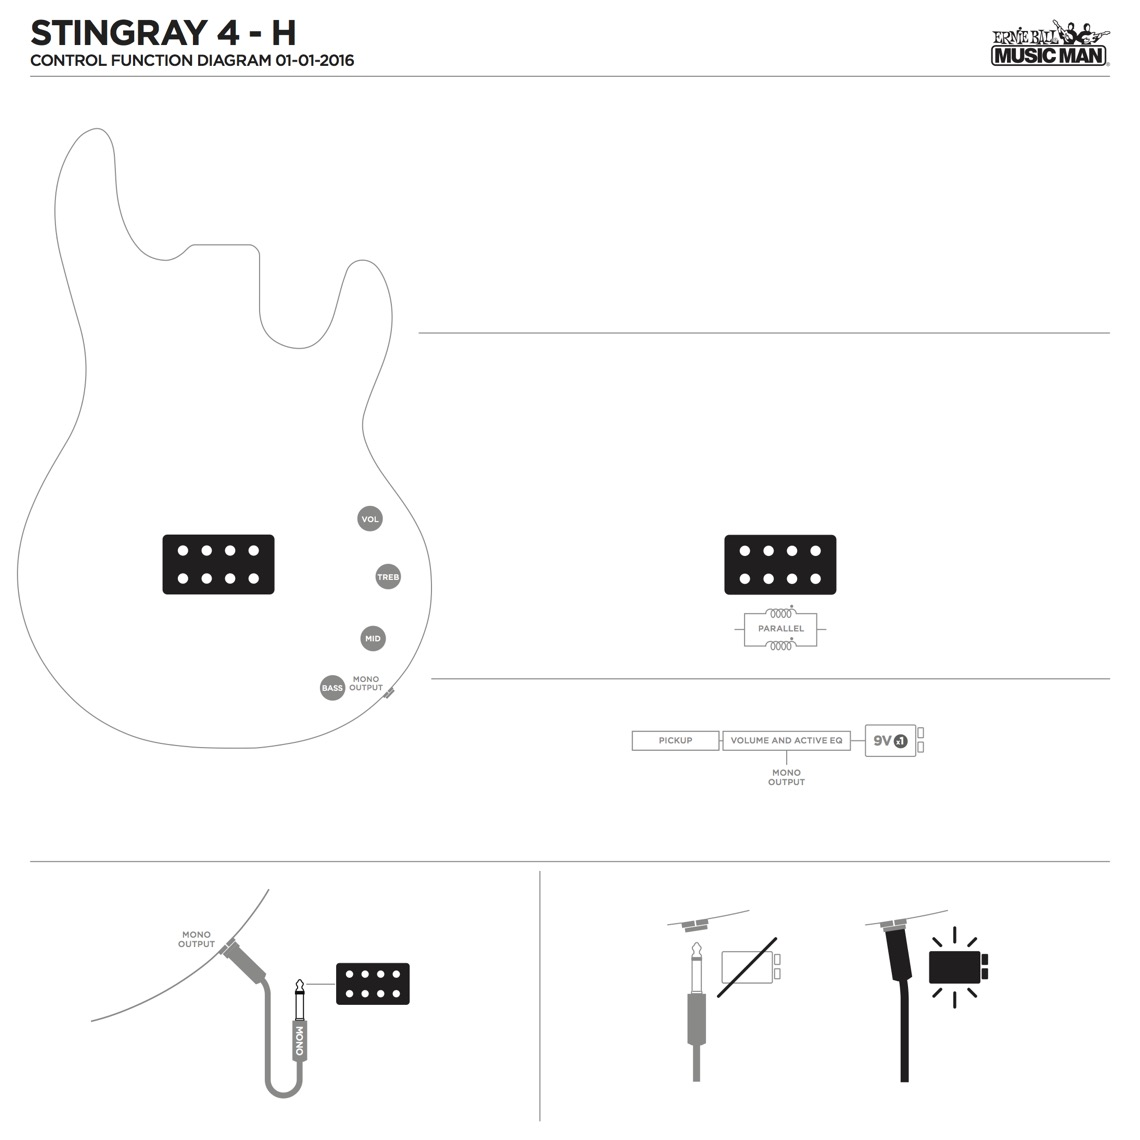 Wiring Diagram Sterling Hh Residential Electrical Symbols J B Stingray Basses Ernie Ball Music Man Rh Com Seymour Duncan Jb